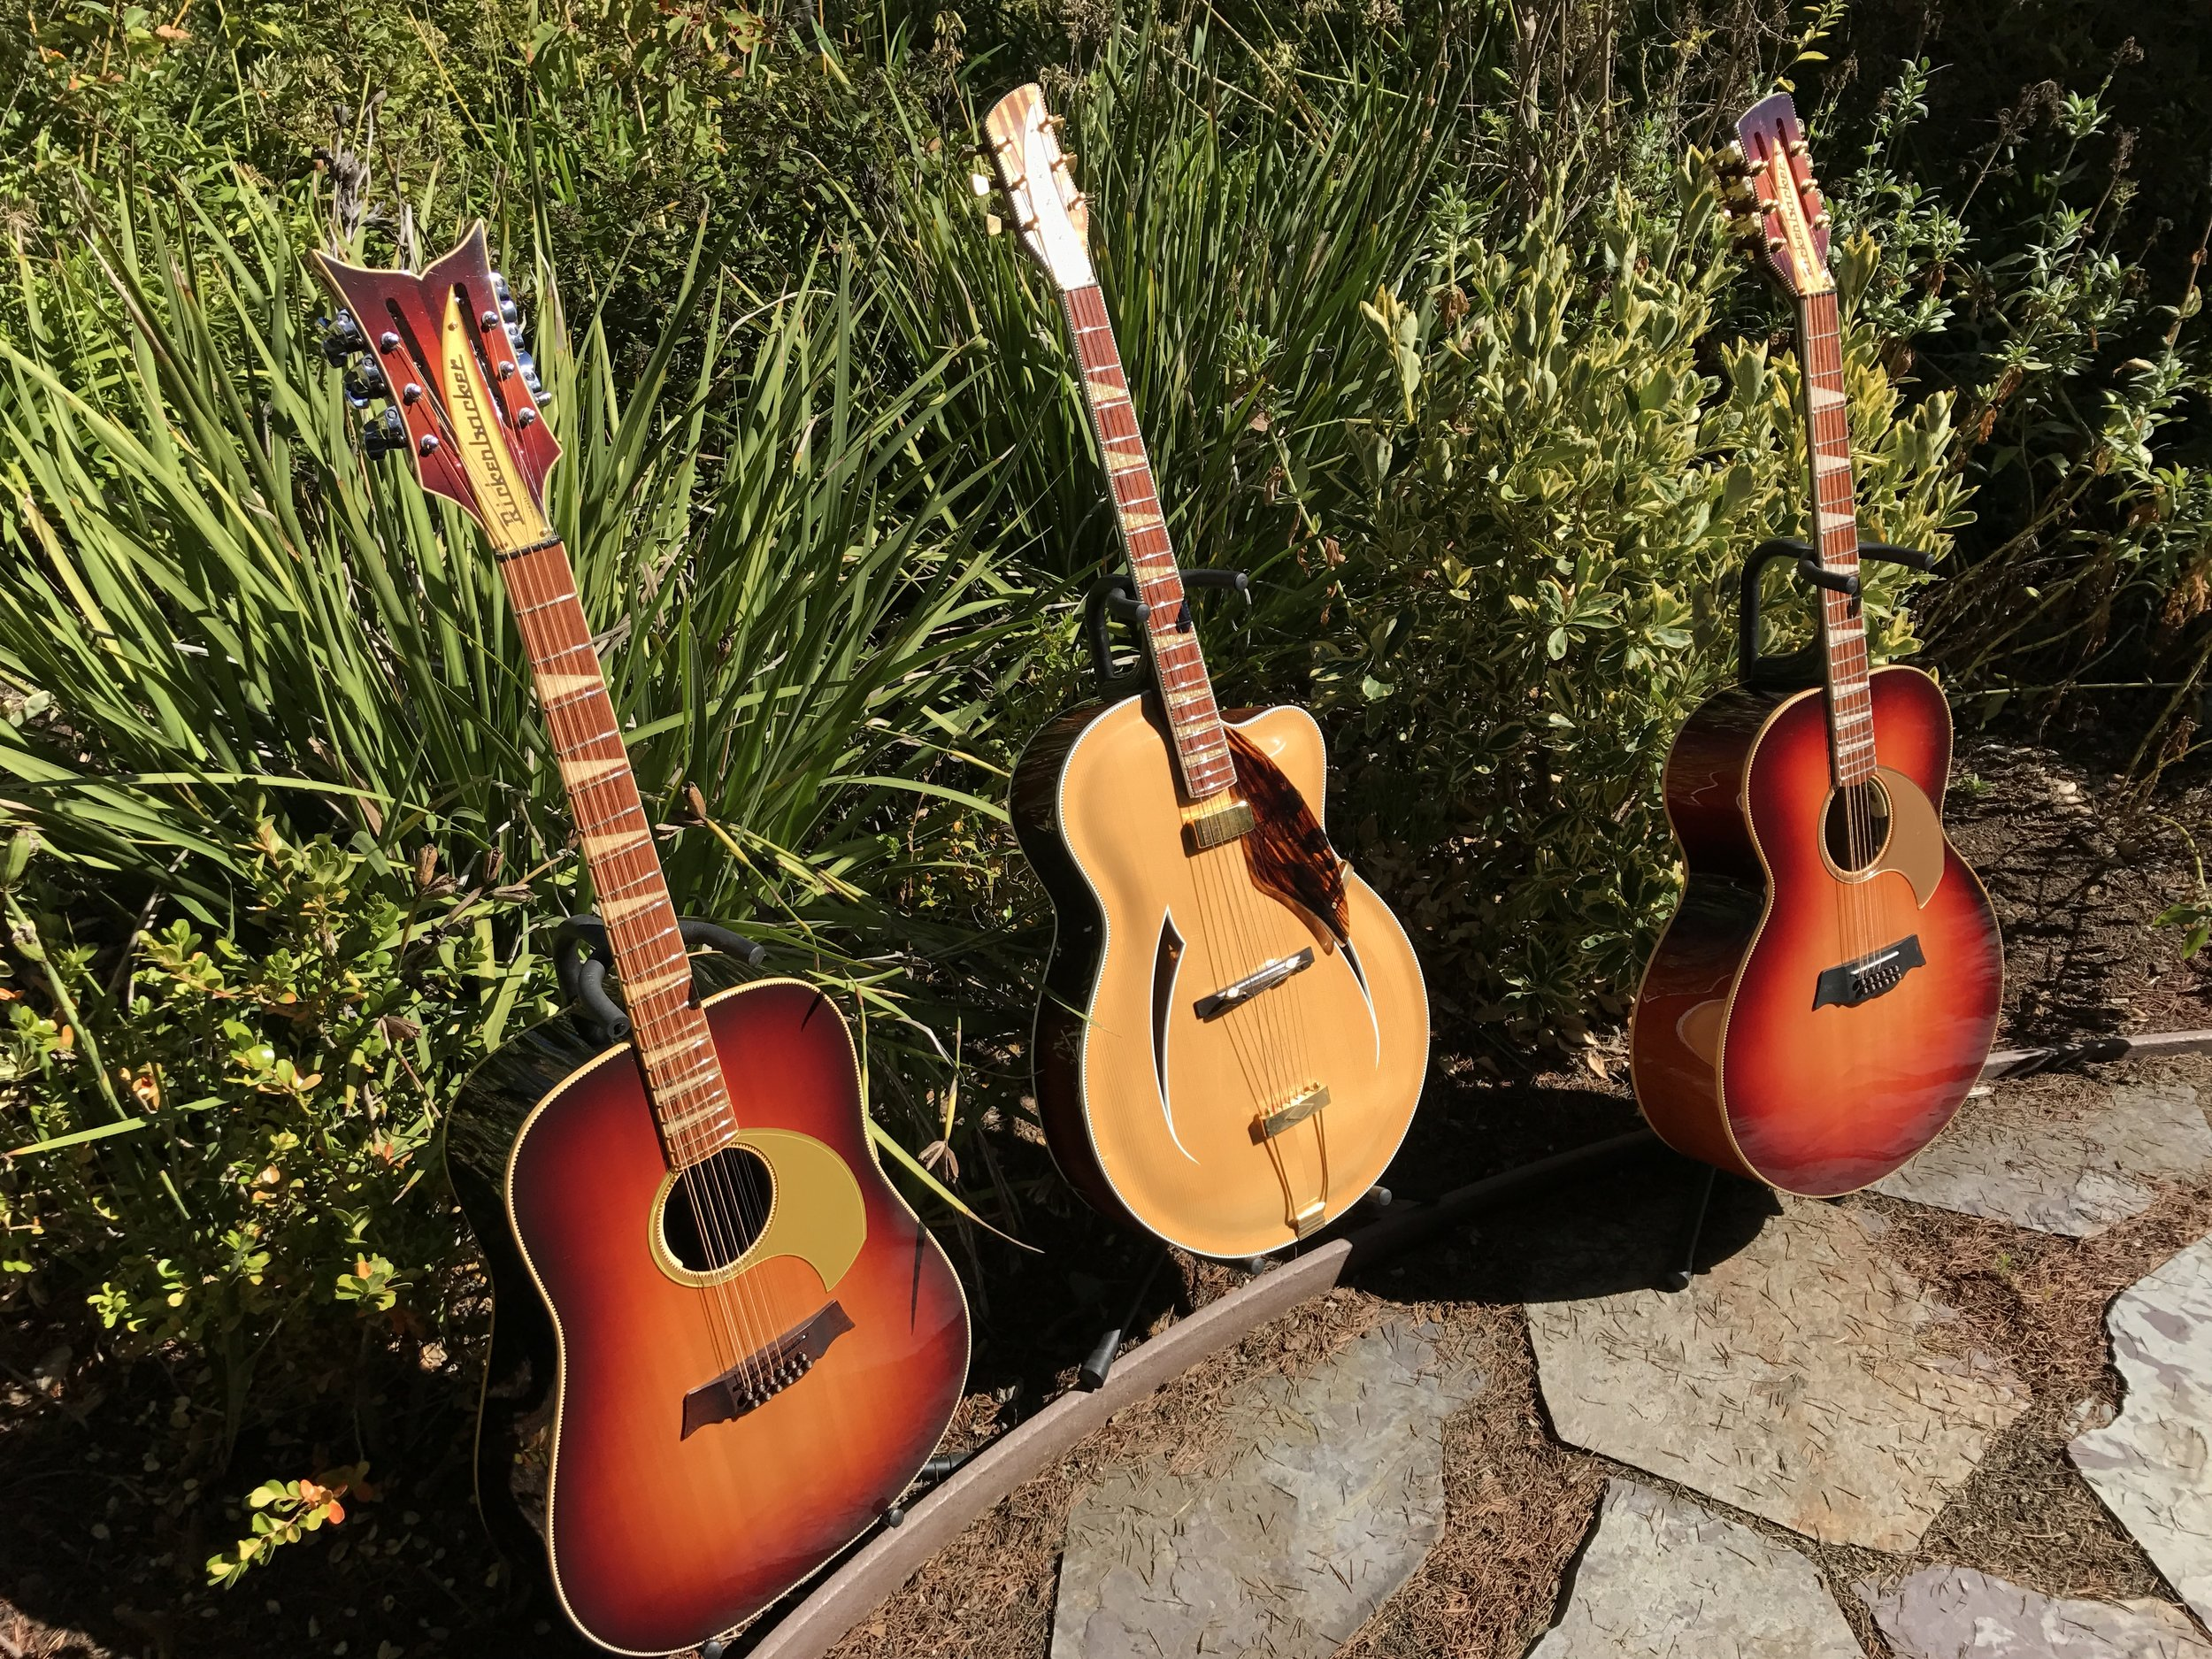 """THE JUMBOS AND JAZZBO ARE ALL 16 1/4"""" GUITARS"""